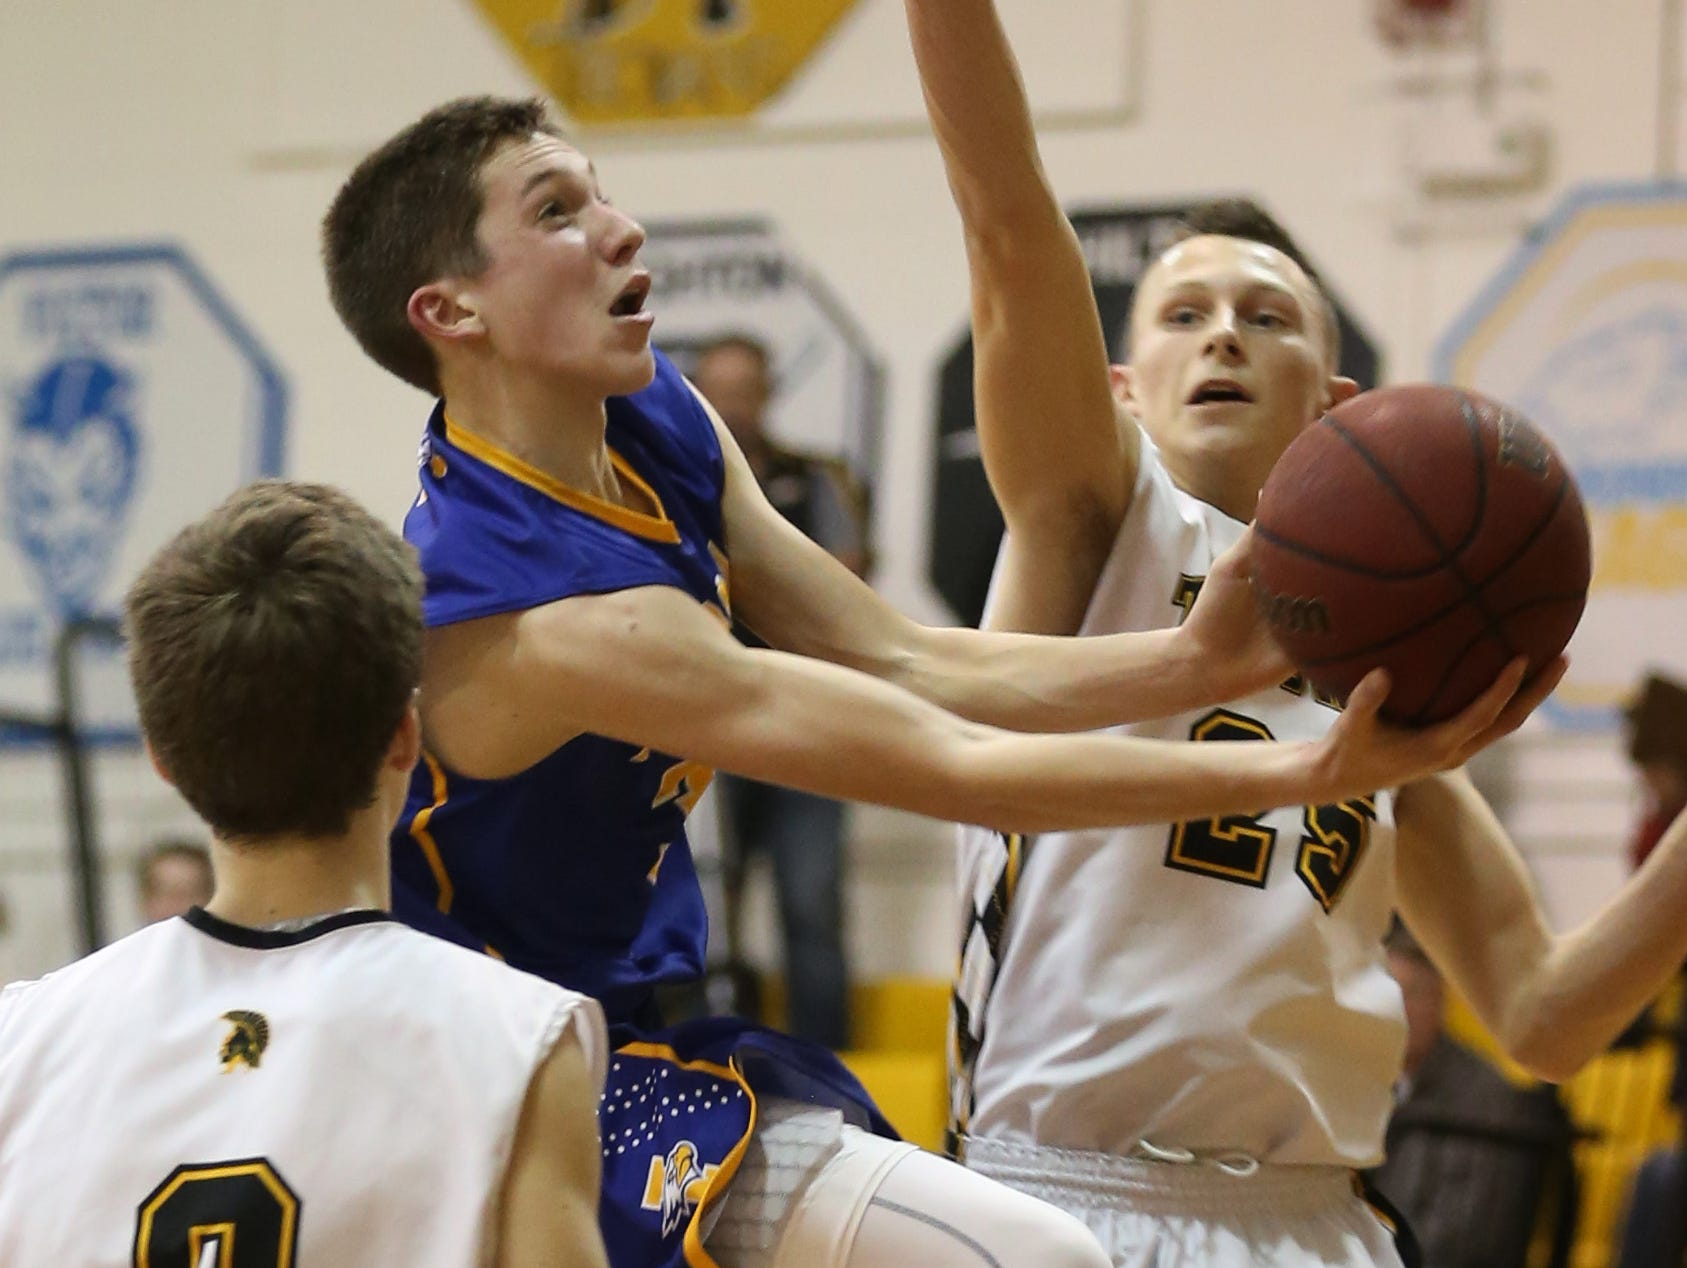 Irondequoit's Zach Stenglein, center, drives in between the defense of Athena's Adam Edinger, left, and Trevor Layne during their game Monday, Dec. 14, 2015 at Greece.